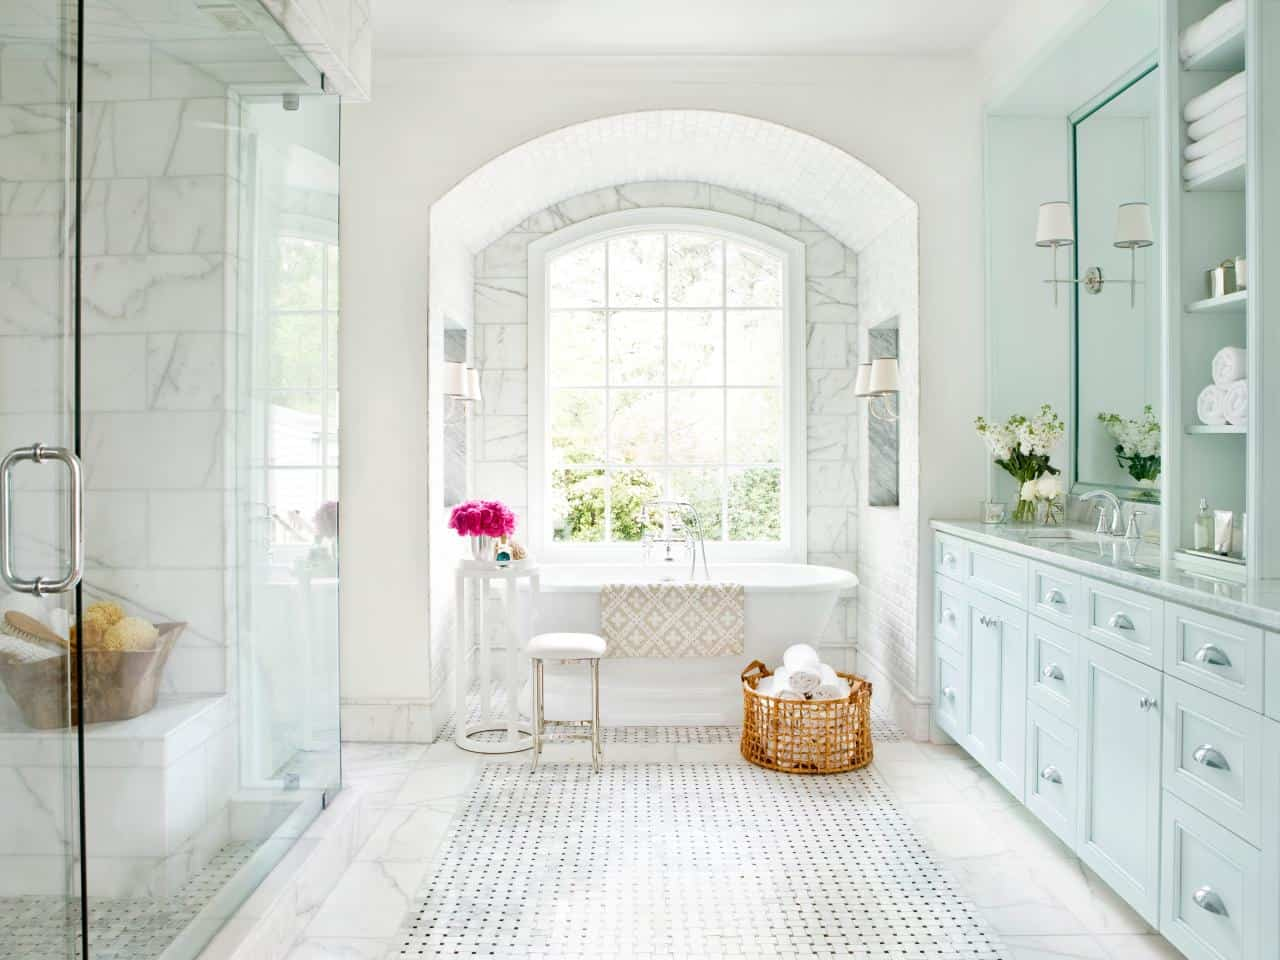 marble extravaganza bathroom White Bathroom Designs That Will Inspire Your Next Renovations